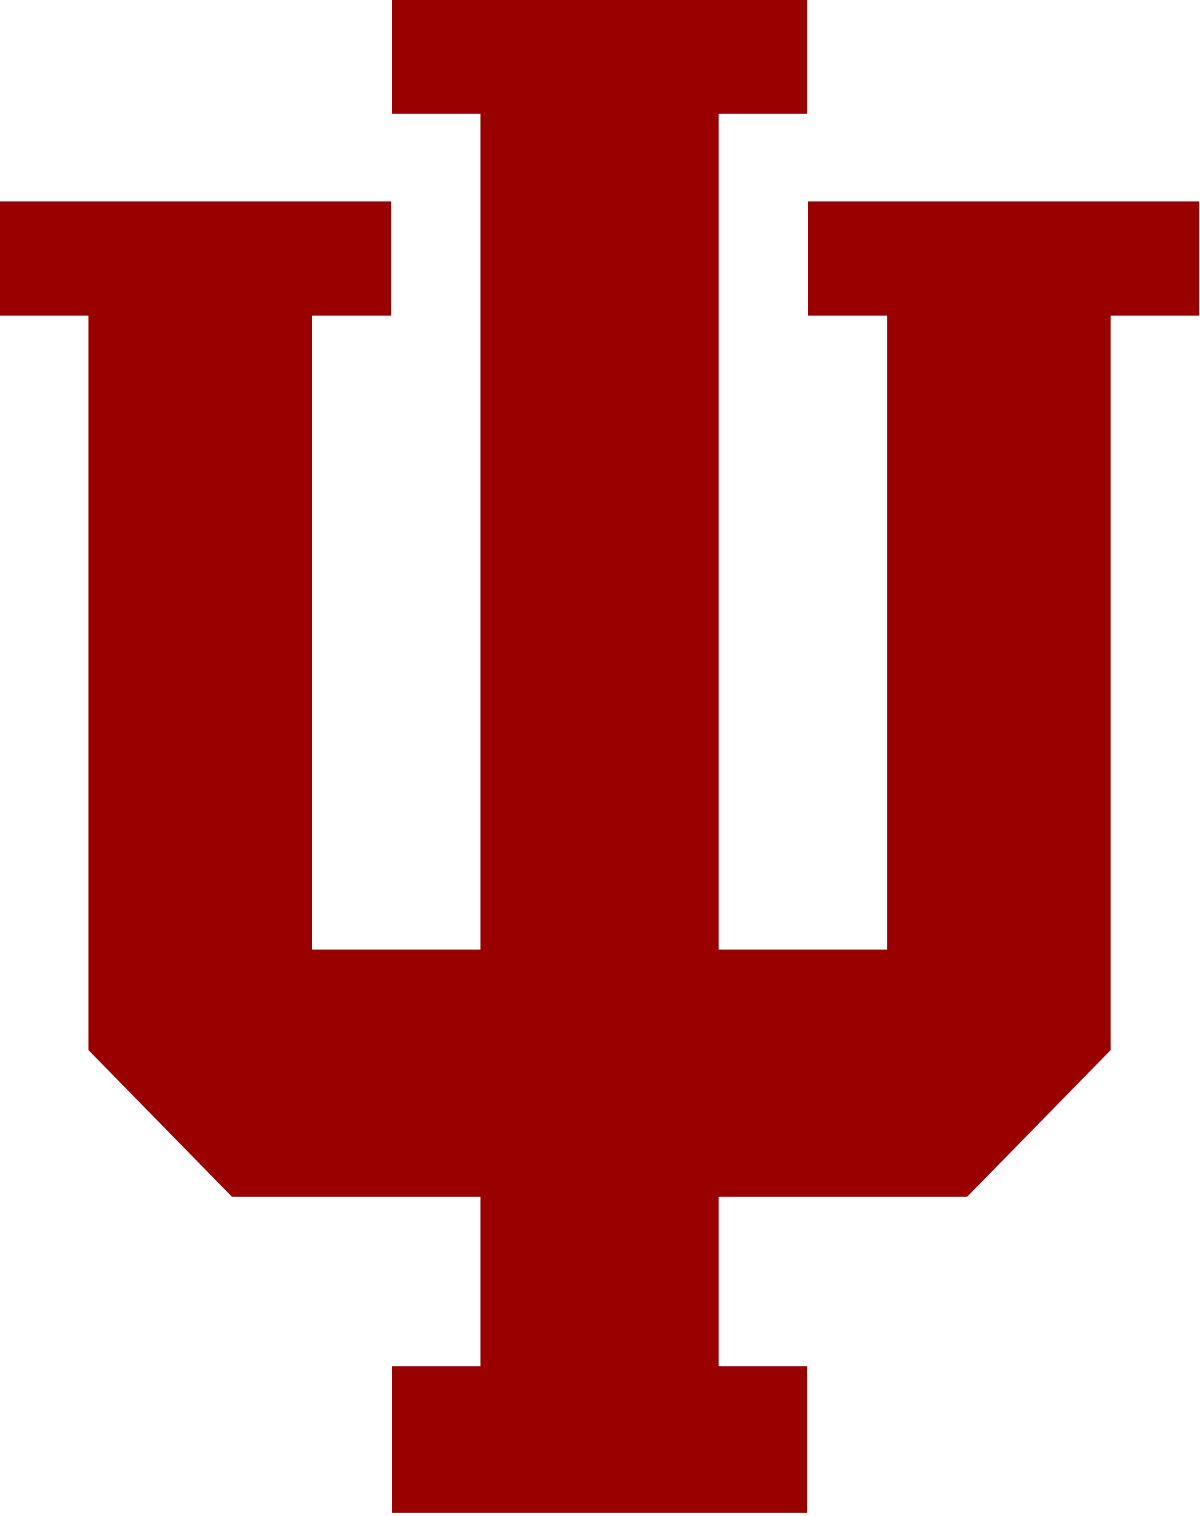 Basketball bracket clipart svg free library Indiana Hoosiers men's basketball - Wikipedia svg free library